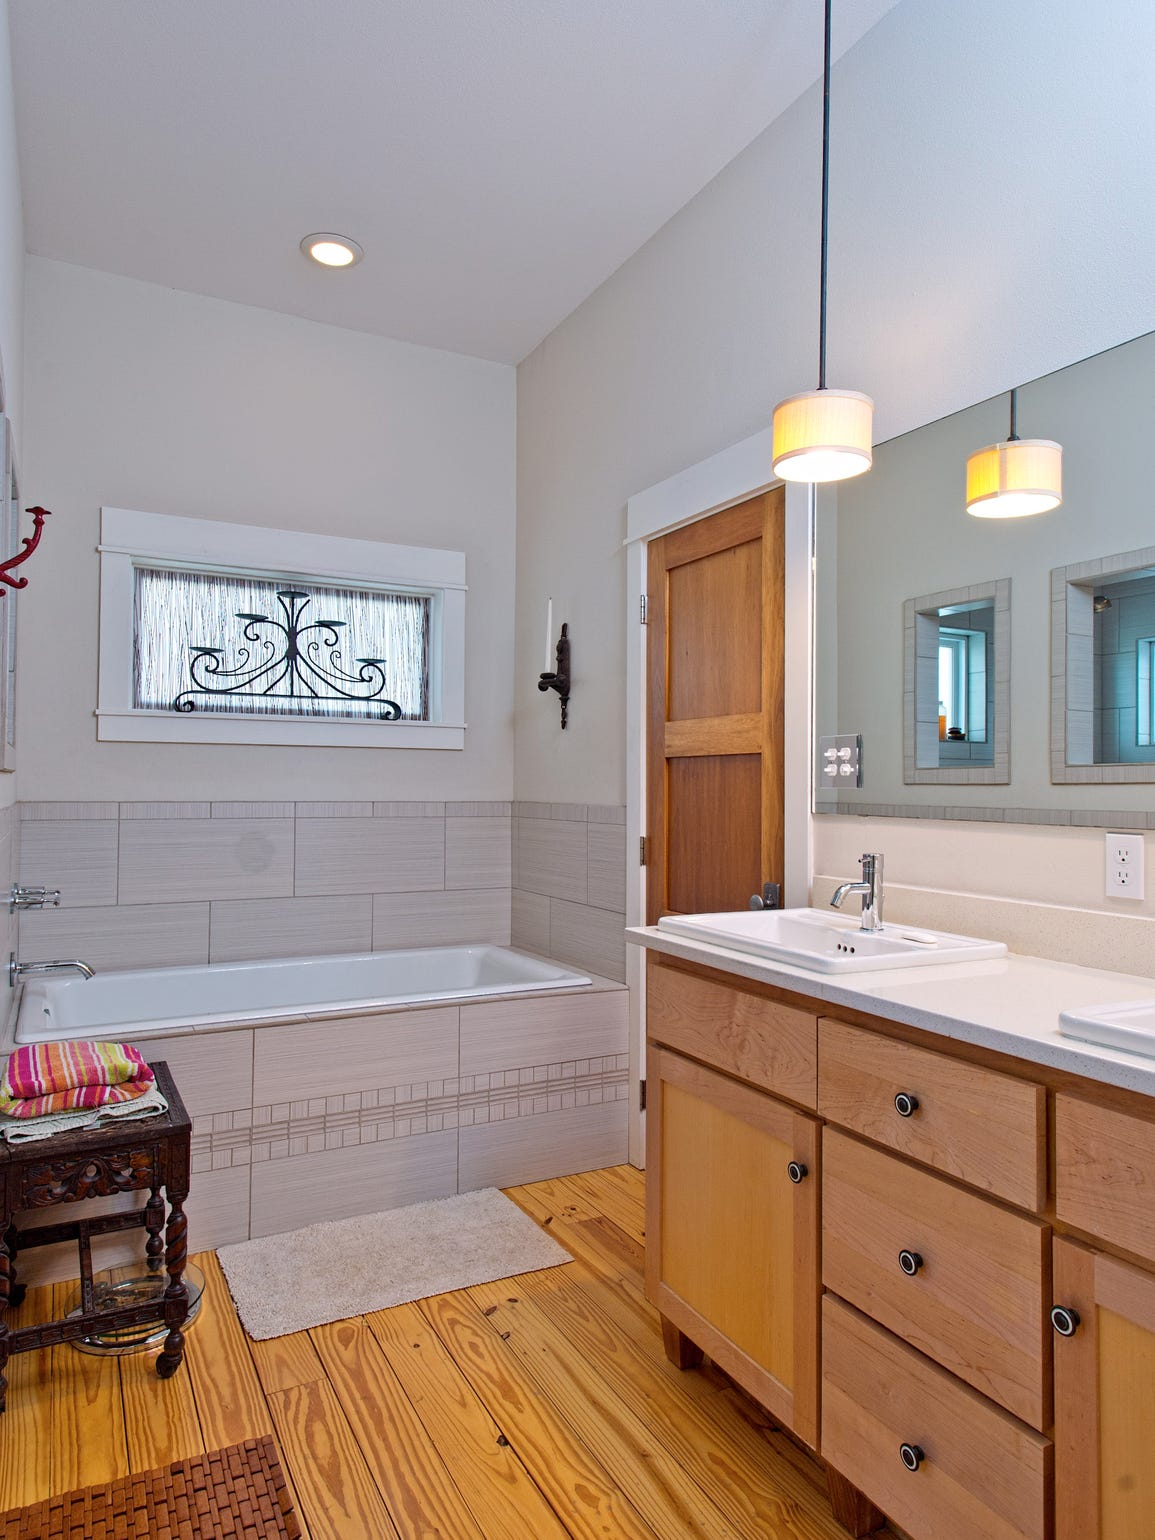 The master bath features pine plank floors, double